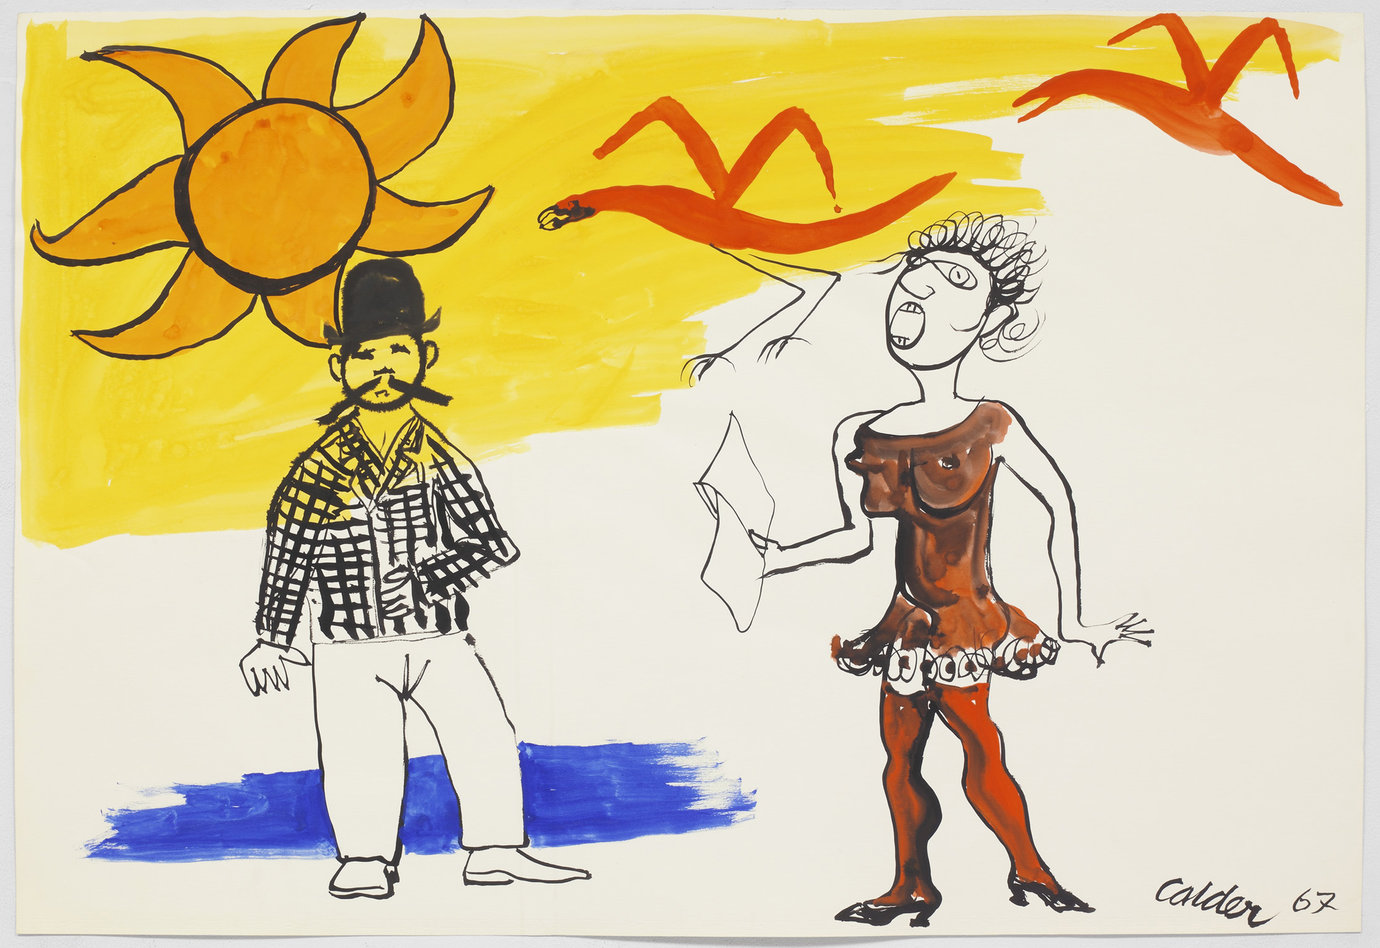 ", 1967. gouache and ink on paper, 29-1/2"" x 43-1/4"" (74.9 cm x 109.9 cm)."